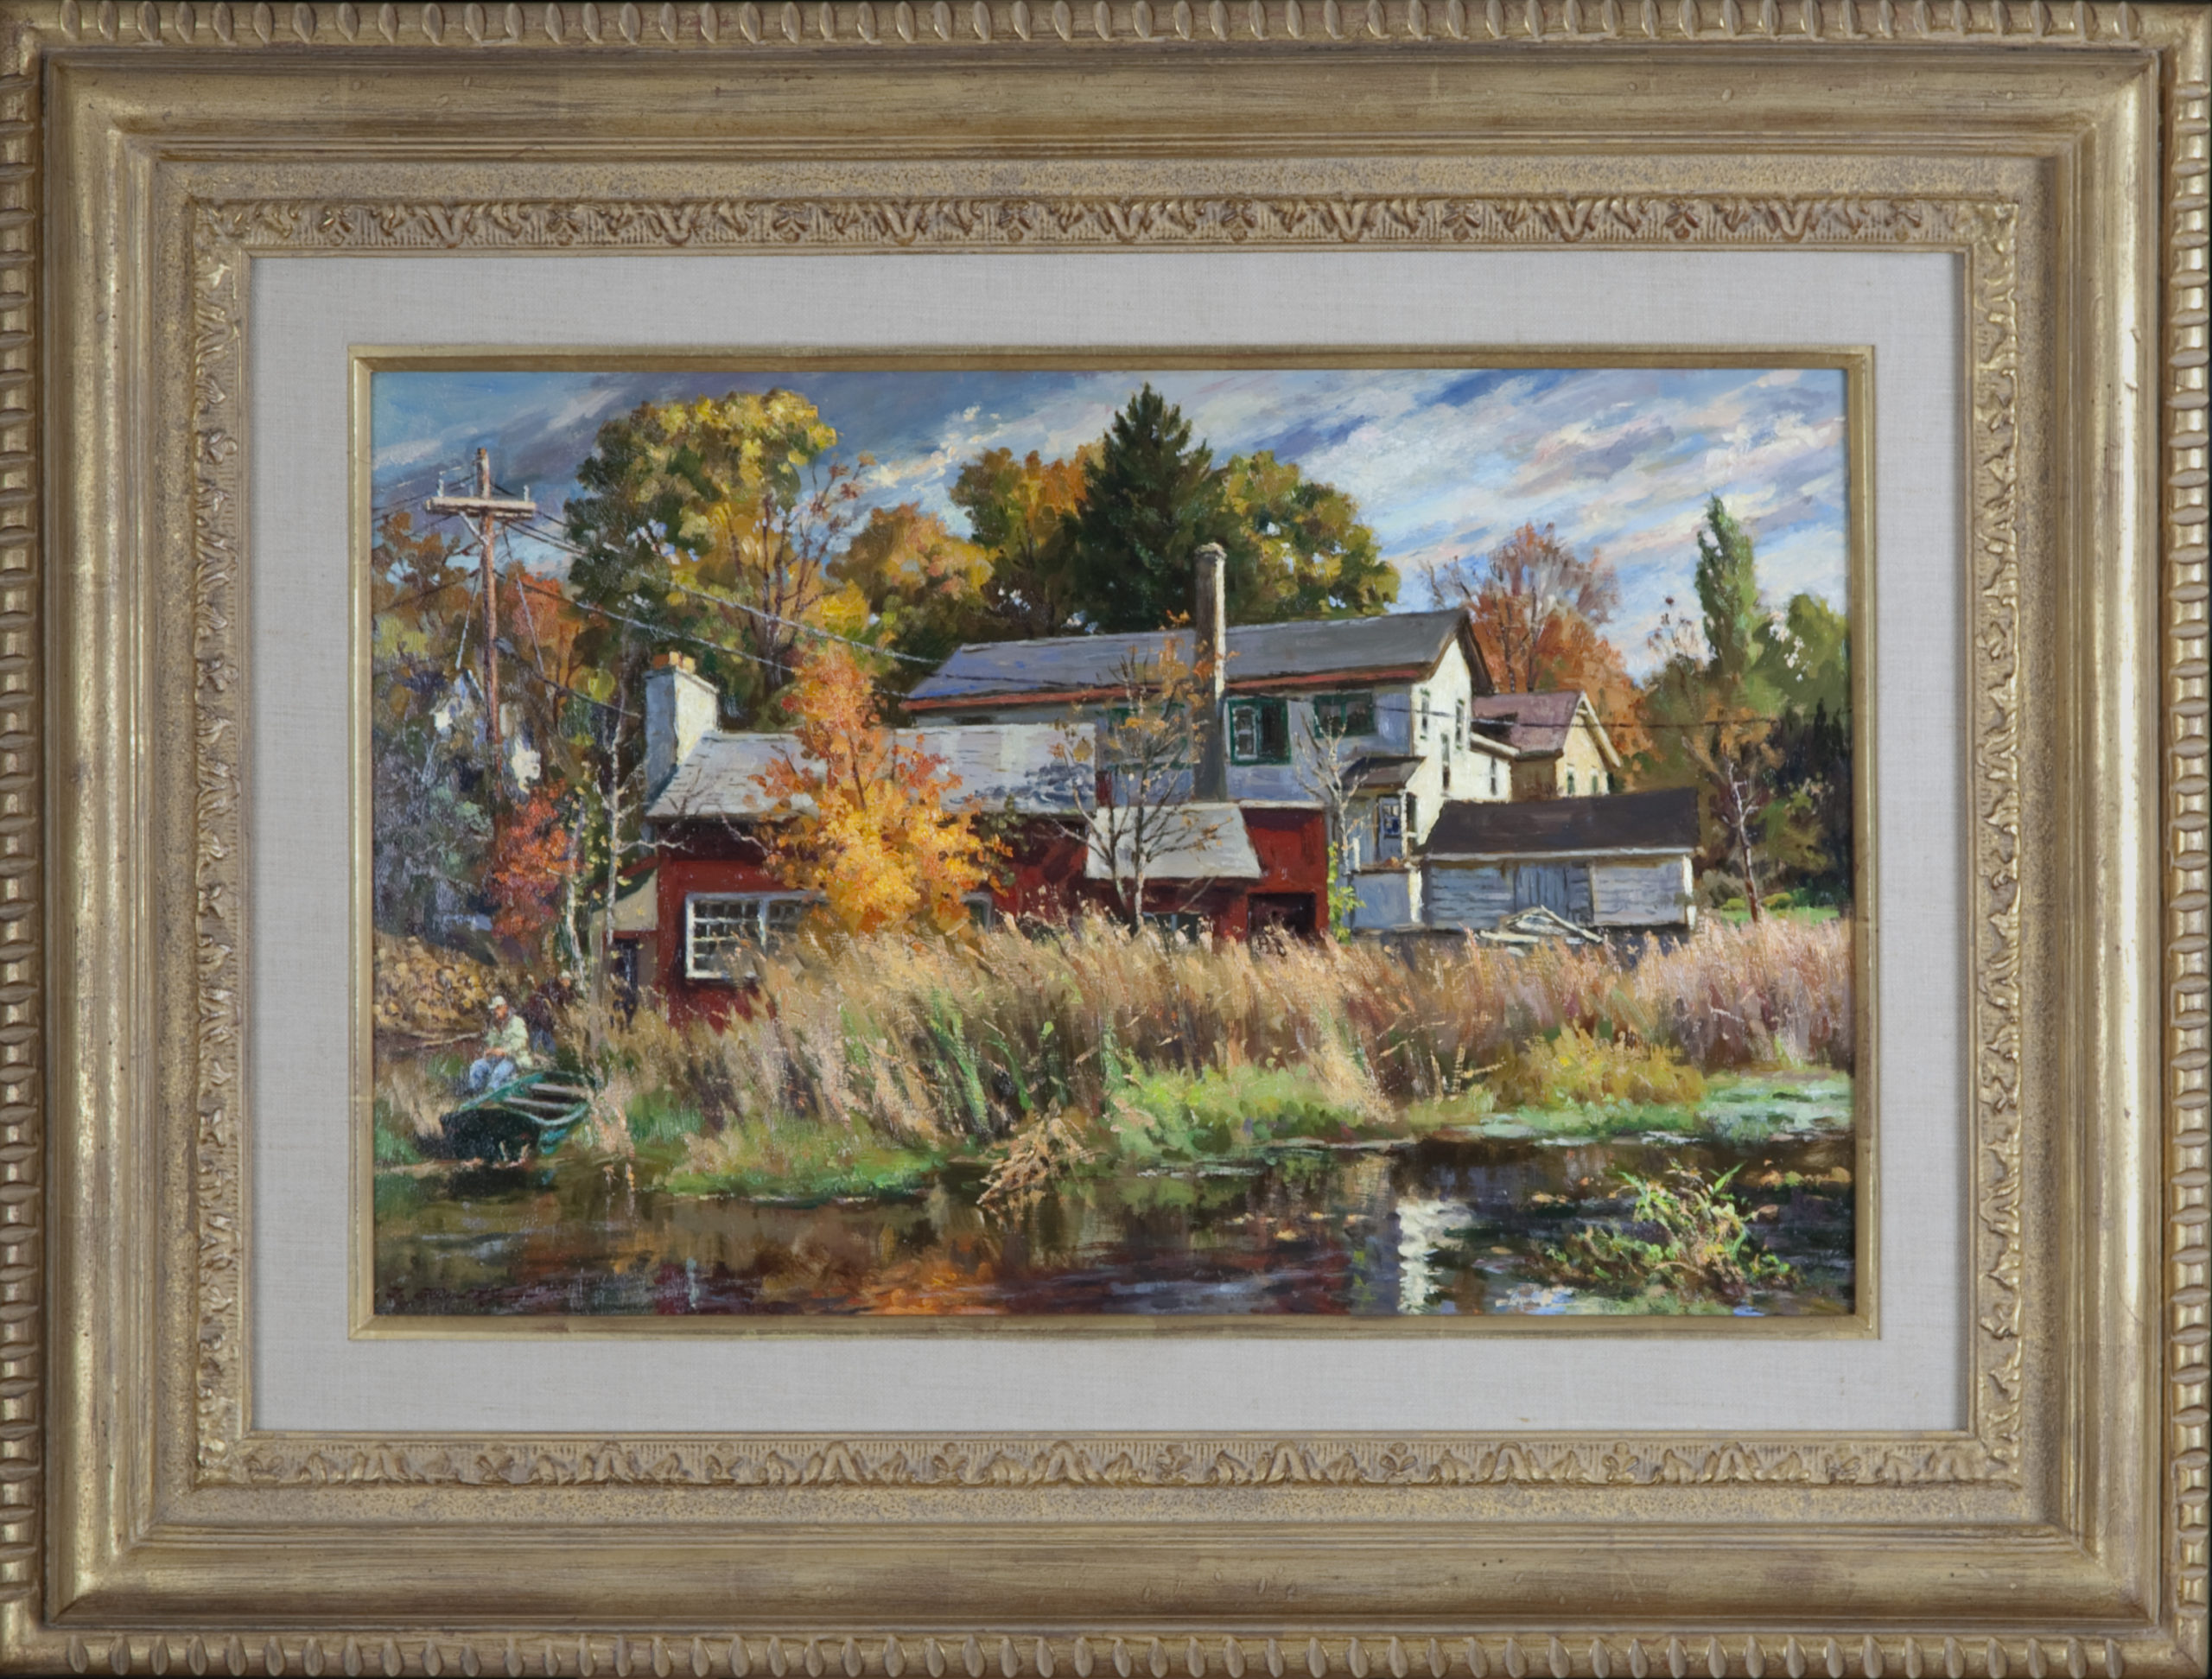 276 Tranquility NY - Oil on Canvas - 22 x 14 - Frame: 33 x 24.75 x 2.25